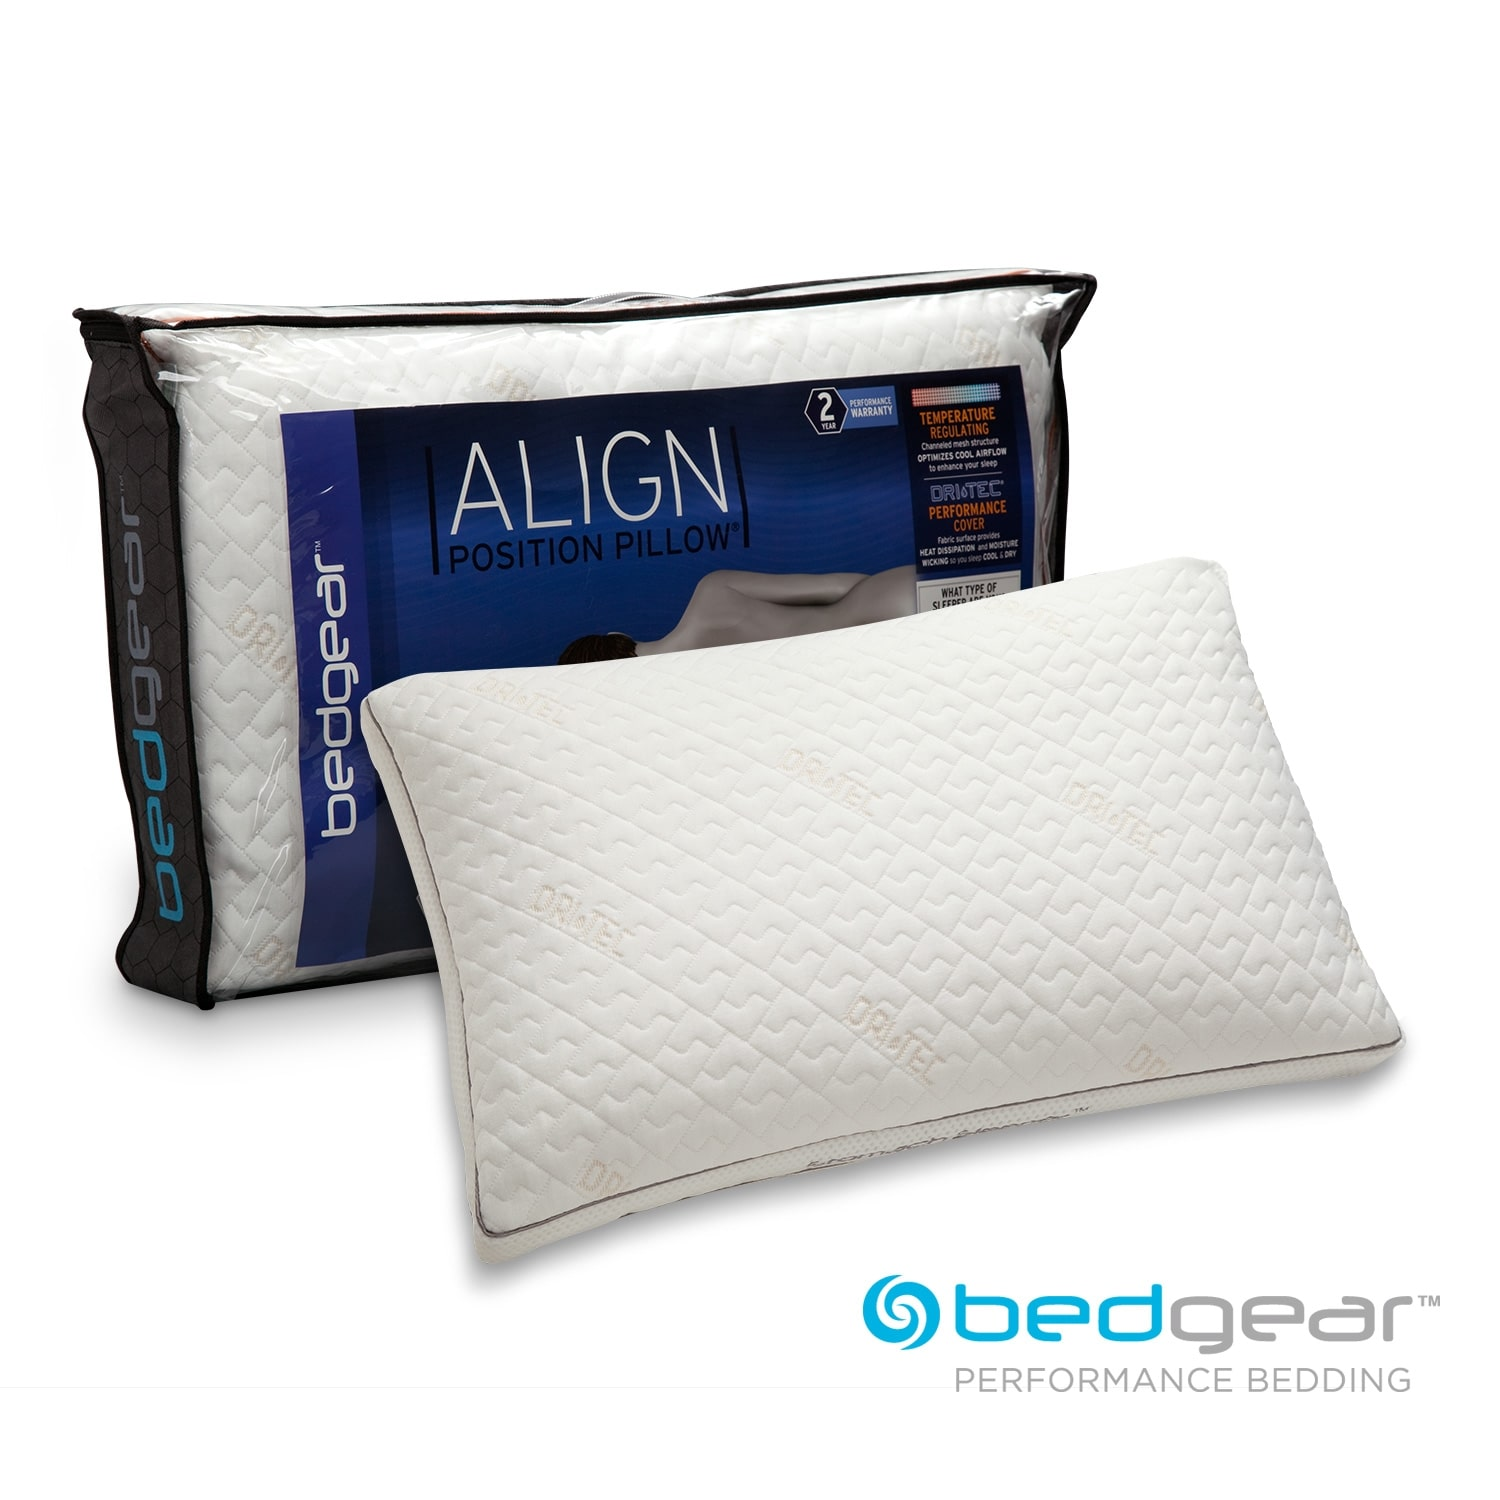 Align Jumbo/Queen Stomach Pillow